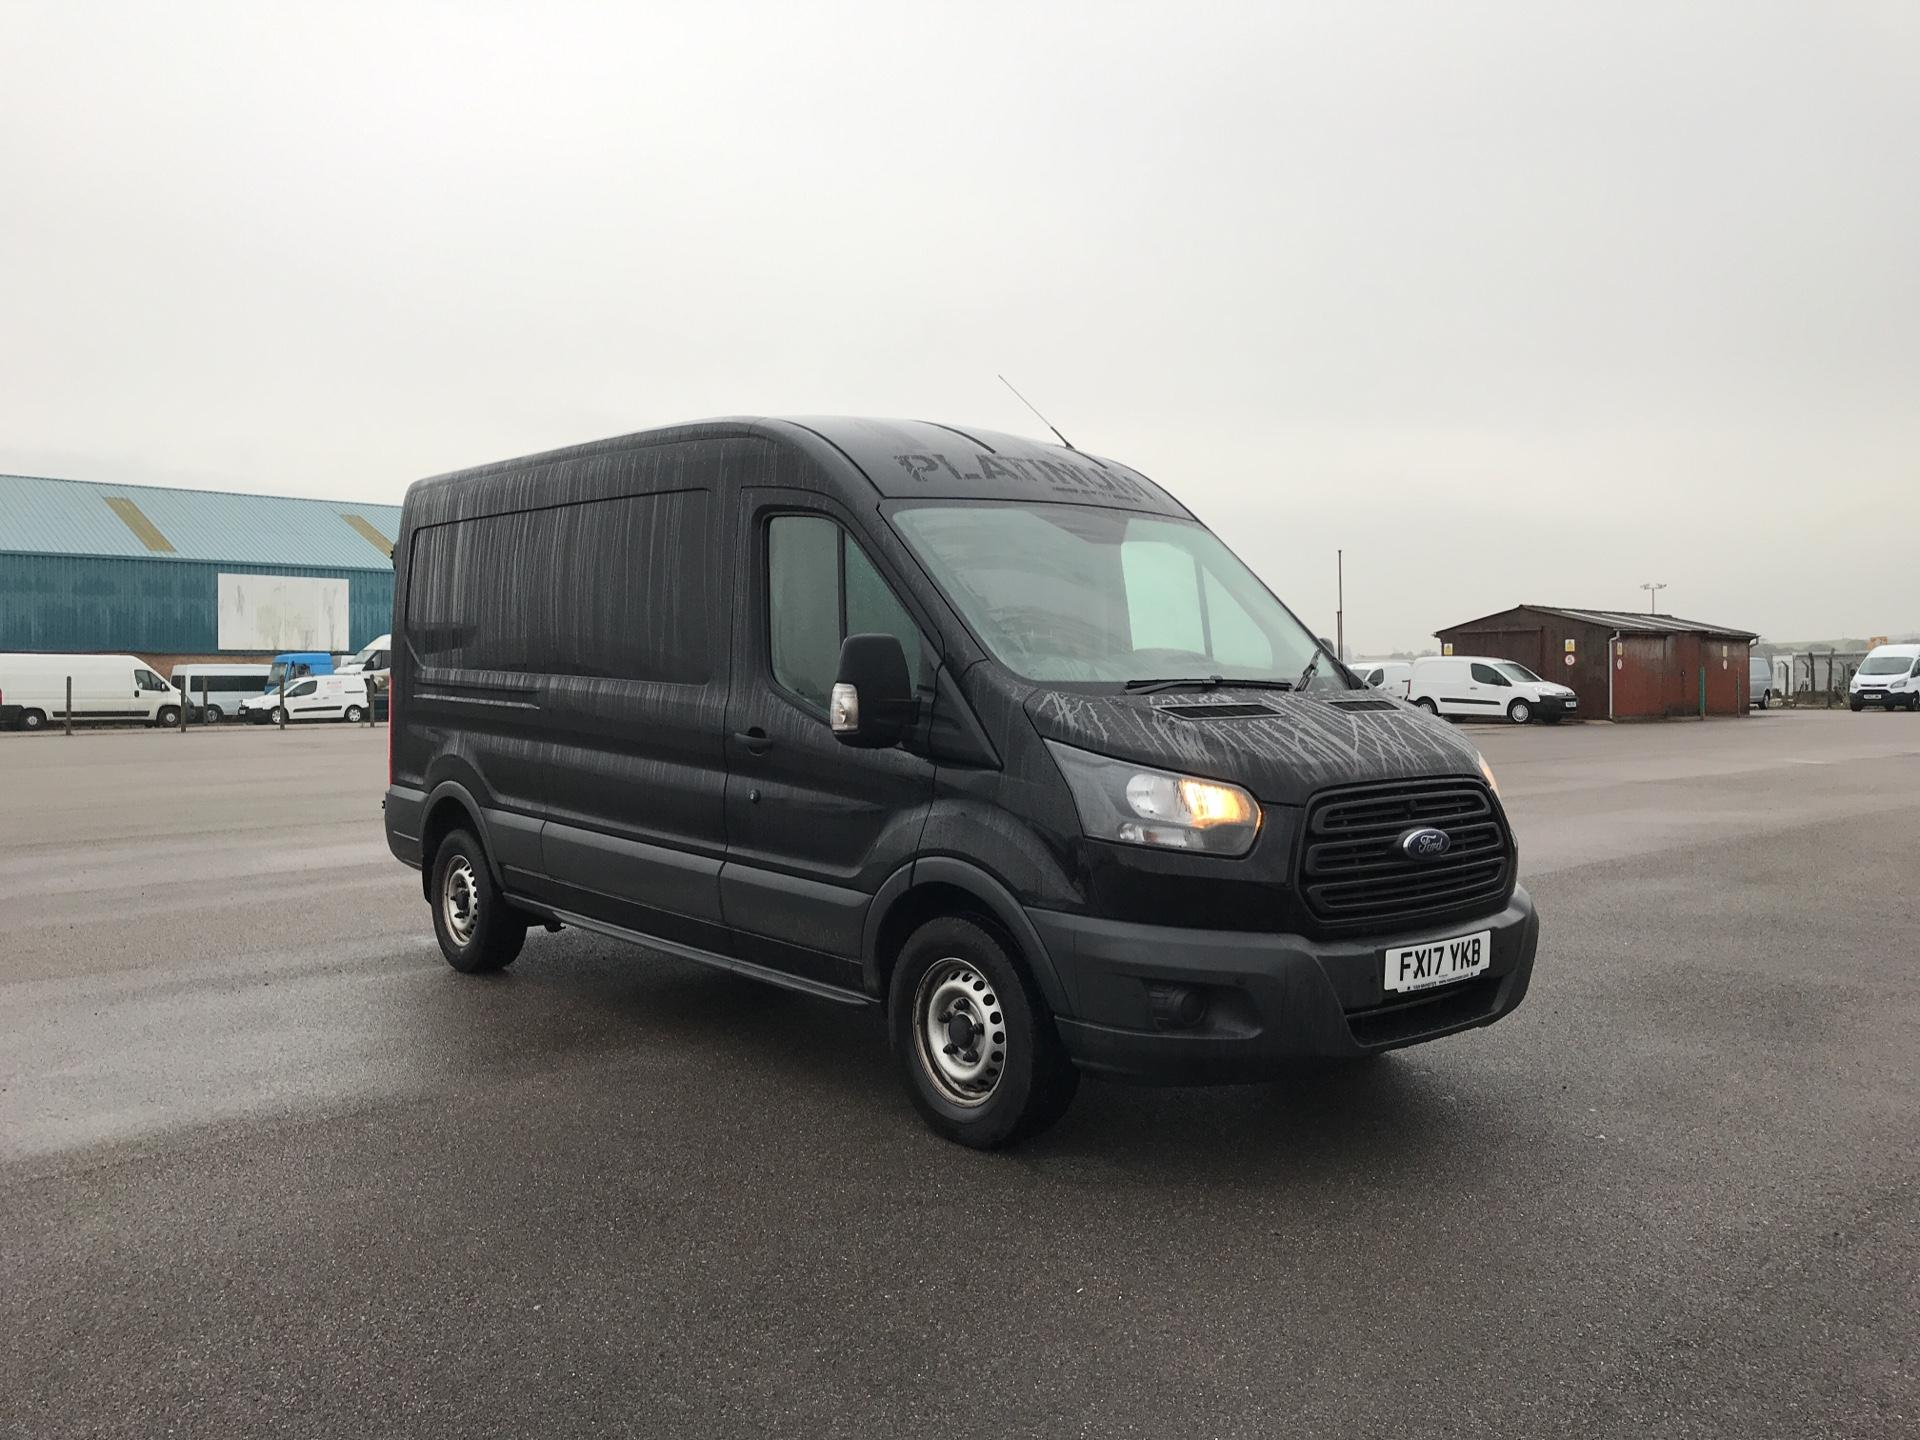 2017 Ford Transit 350 L3 H2 VAN 130PS FWD EURO 5. VALUE RANGE VEHICLE - CONDITION REFLECTED IN PRICE (FX17YKB)